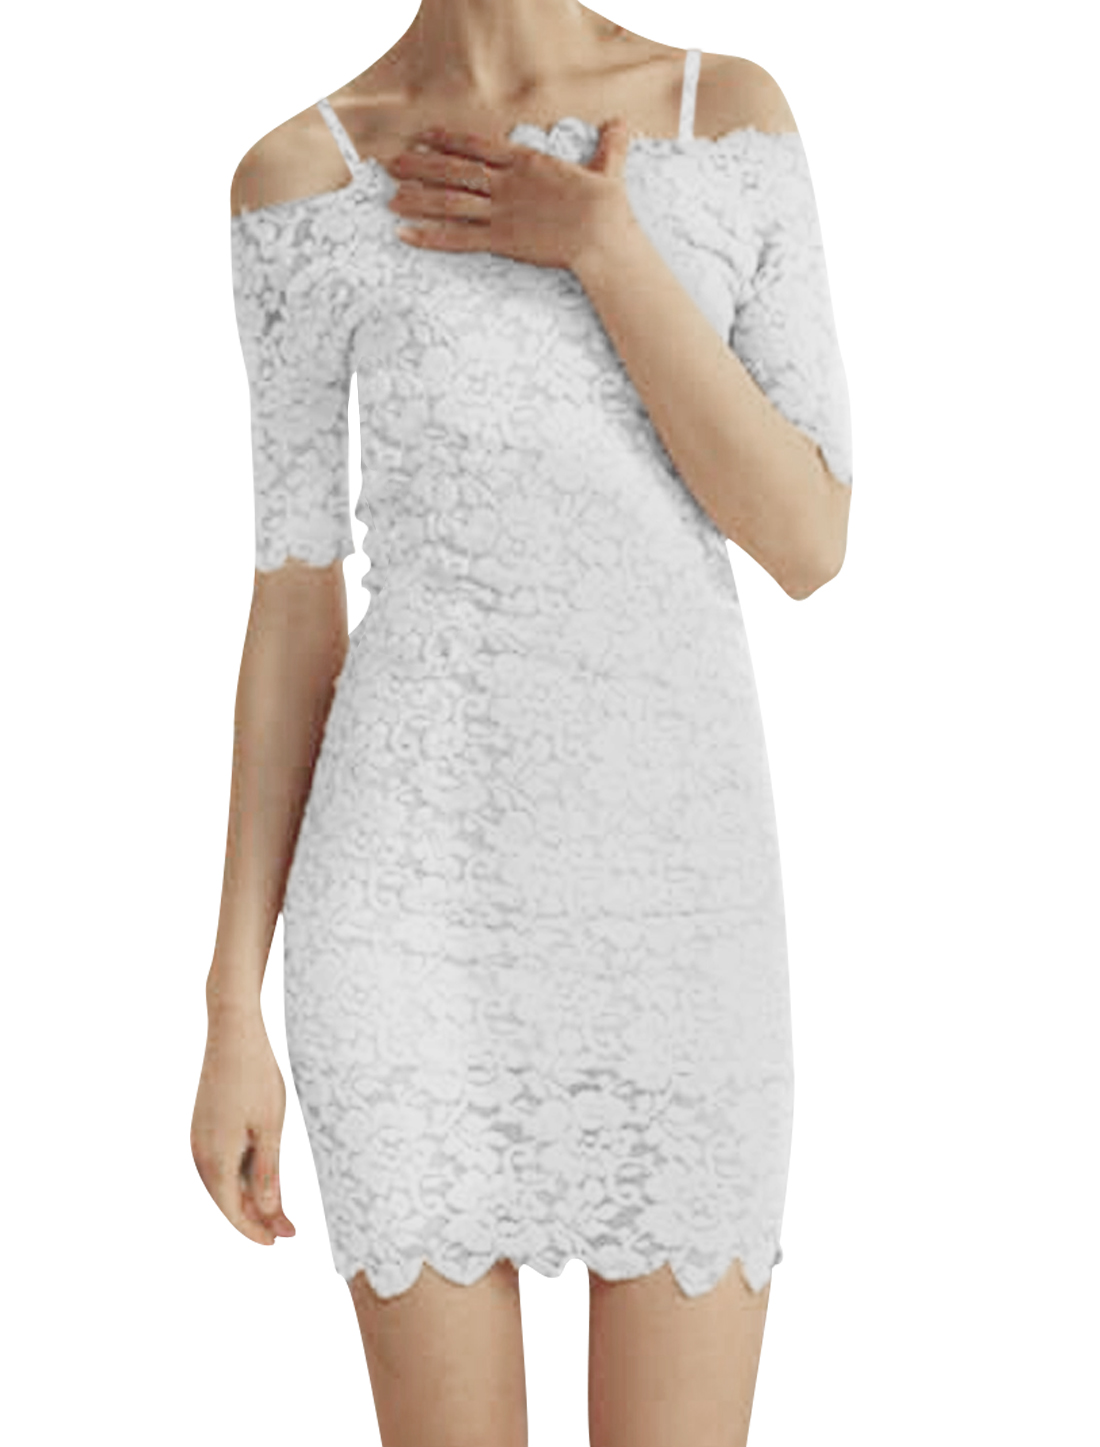 Lady Boat Neck Of-Shoulder Elbow Sleeve Pure White Lace Mini Dress L